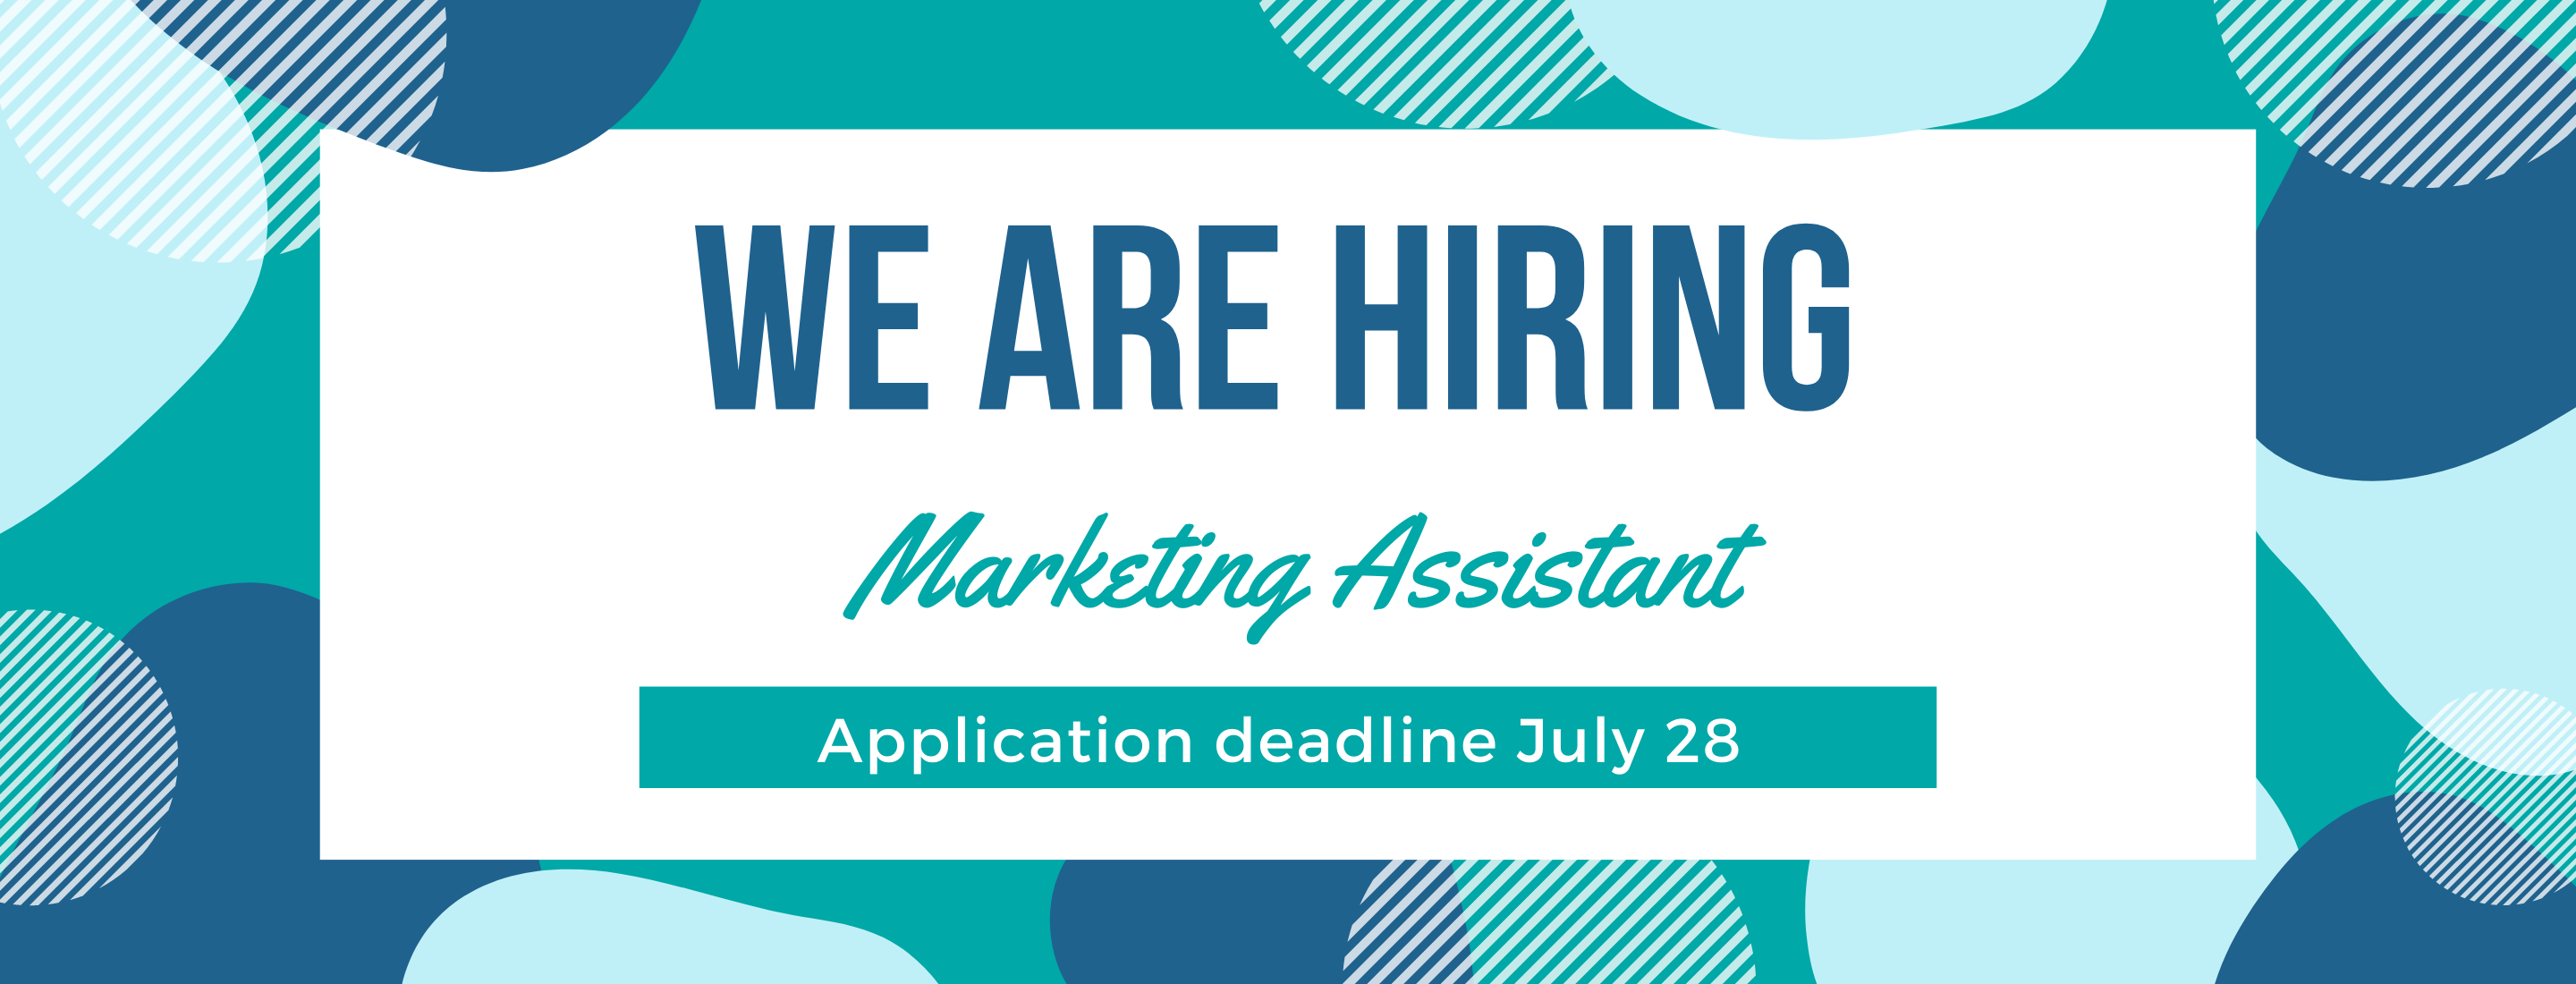 """Bright image with text """"We are hiring. Program Assistant - Education Application deadline July 28"""""""